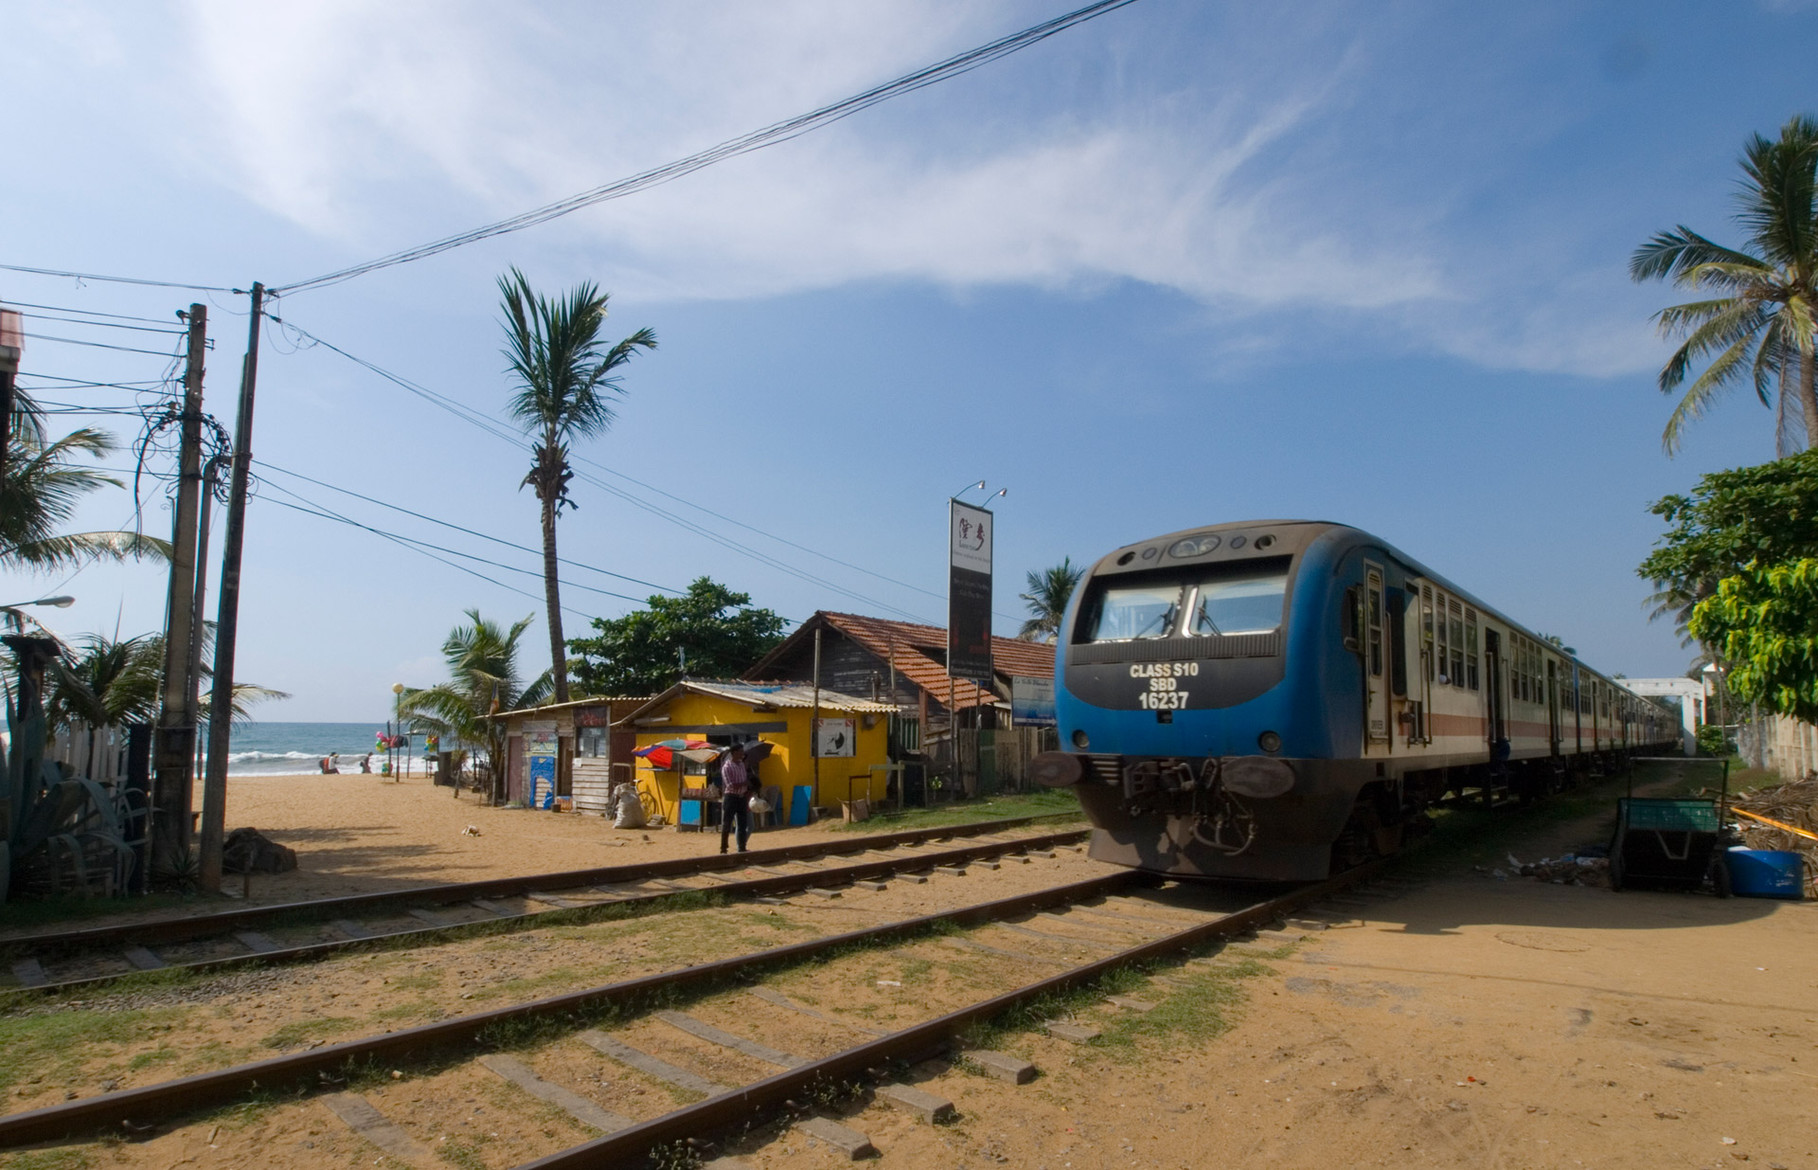 Railway next to the beach at Mount Lavinia